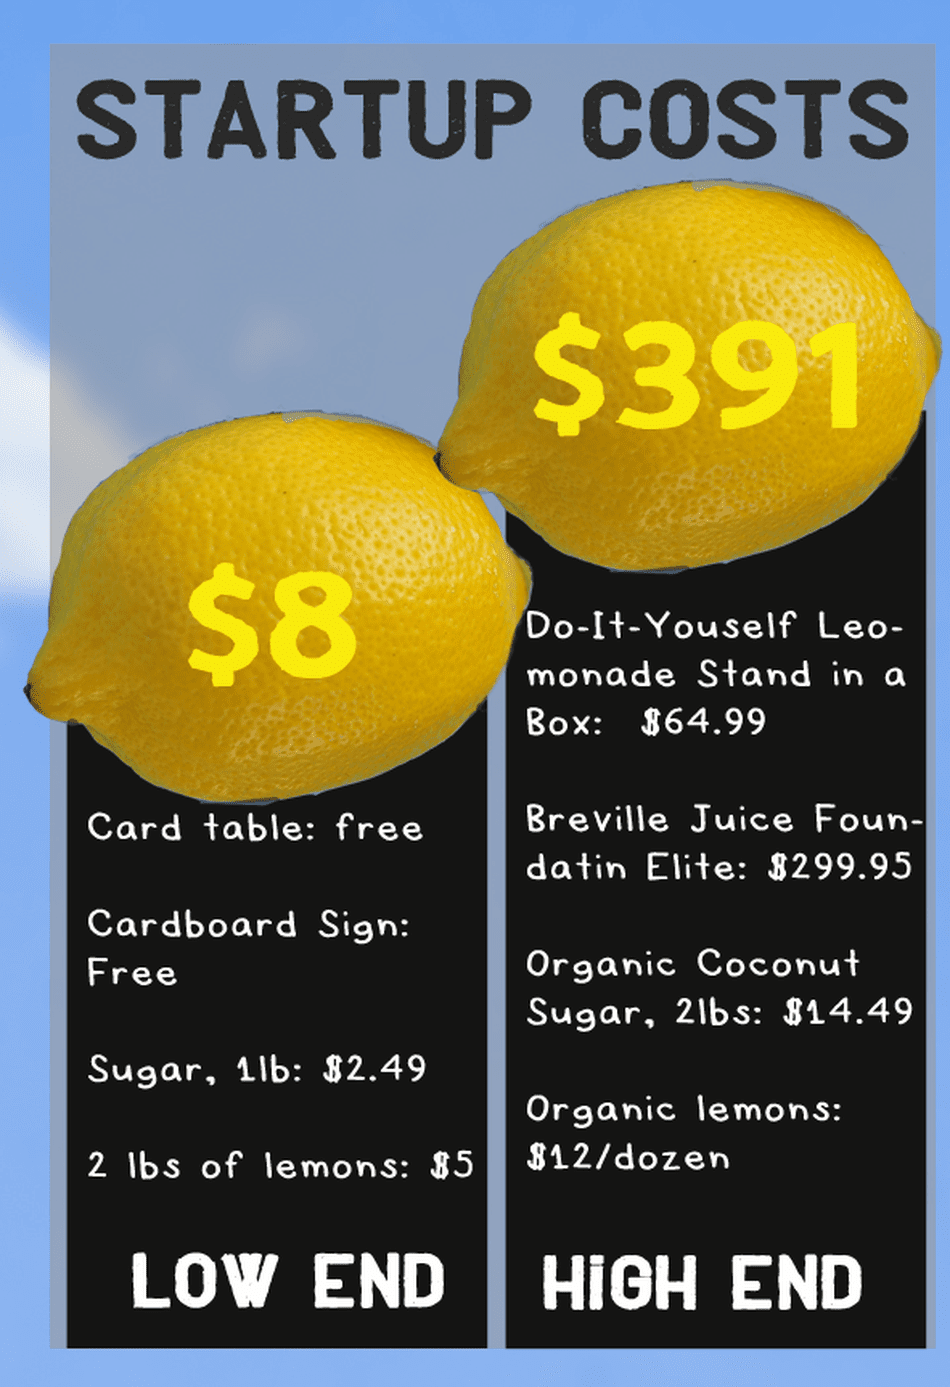 Humors comic with the economic cost of a lemonade stand showing low end—using cardboard sign and card table or expensive.